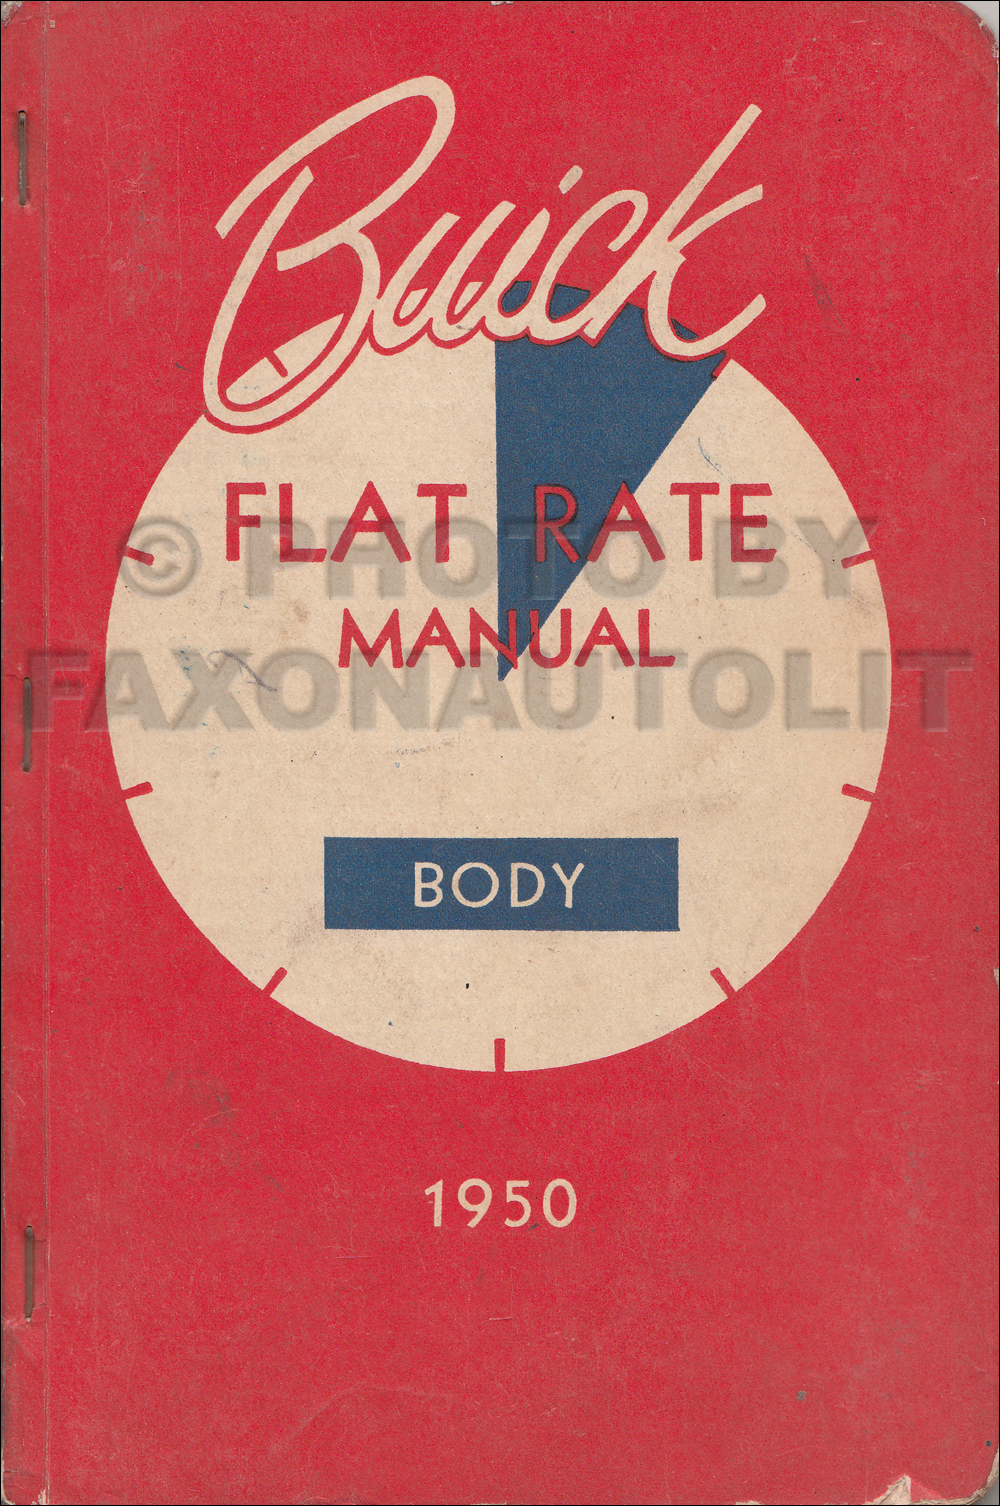 1950 buick repair shop manual parts book on cd for super special 1950 buick flat rate body manual original